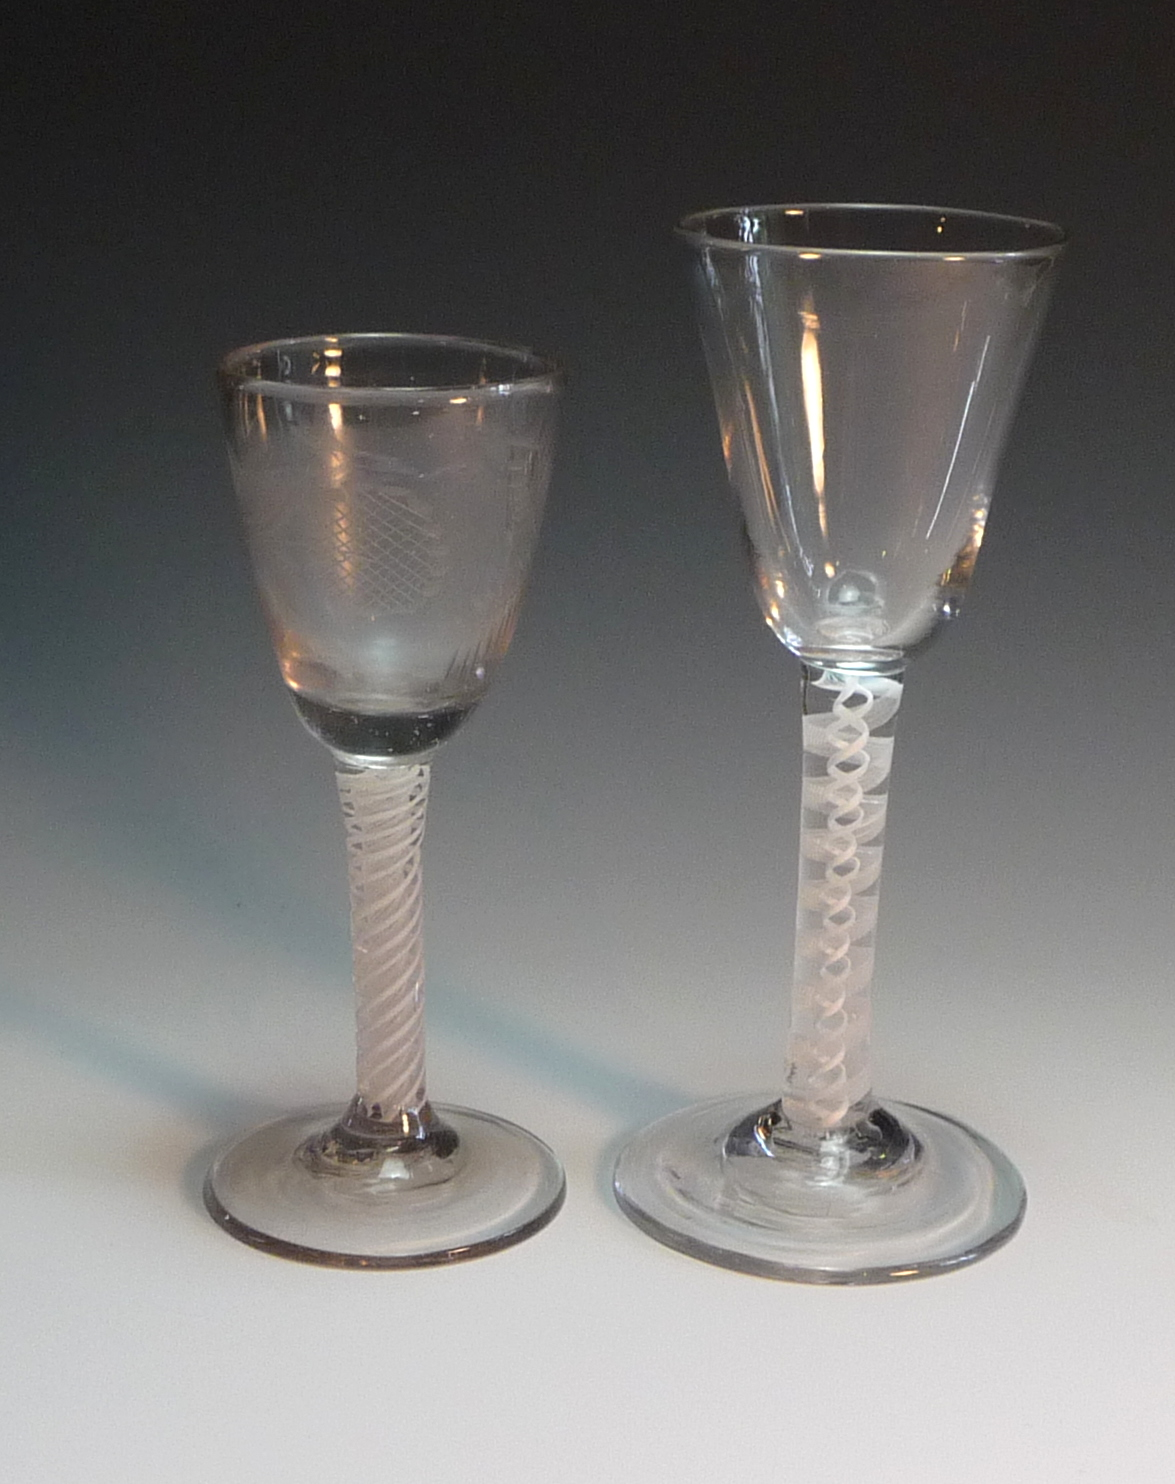 Etched Crystal Wine Glasses Patterns